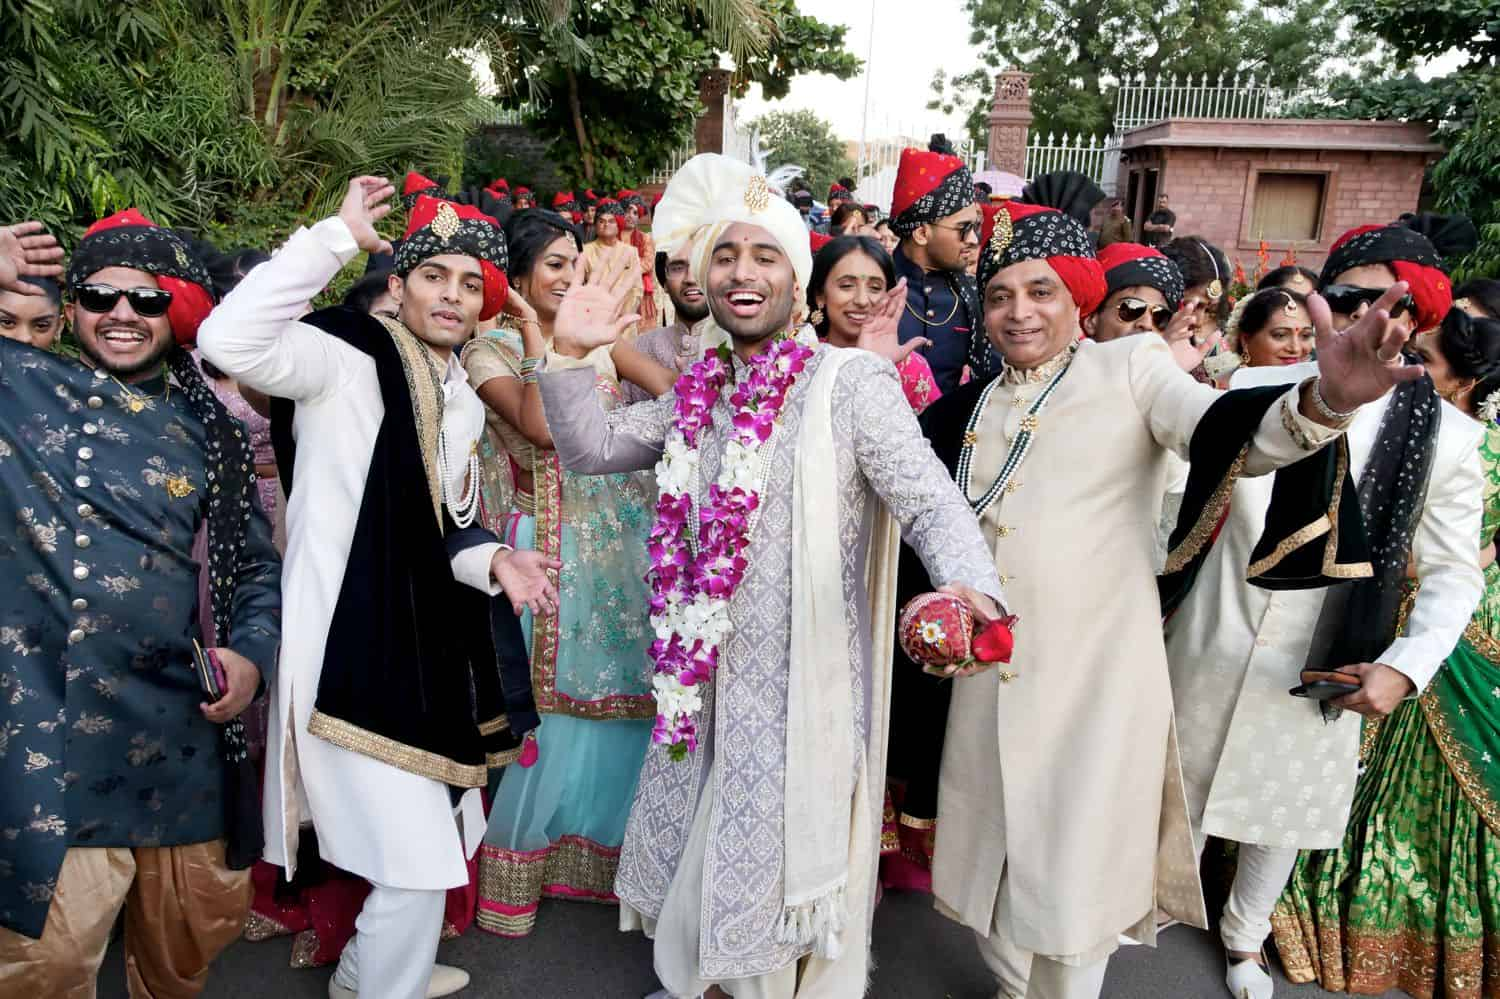 An Indian groom together with wedding guests